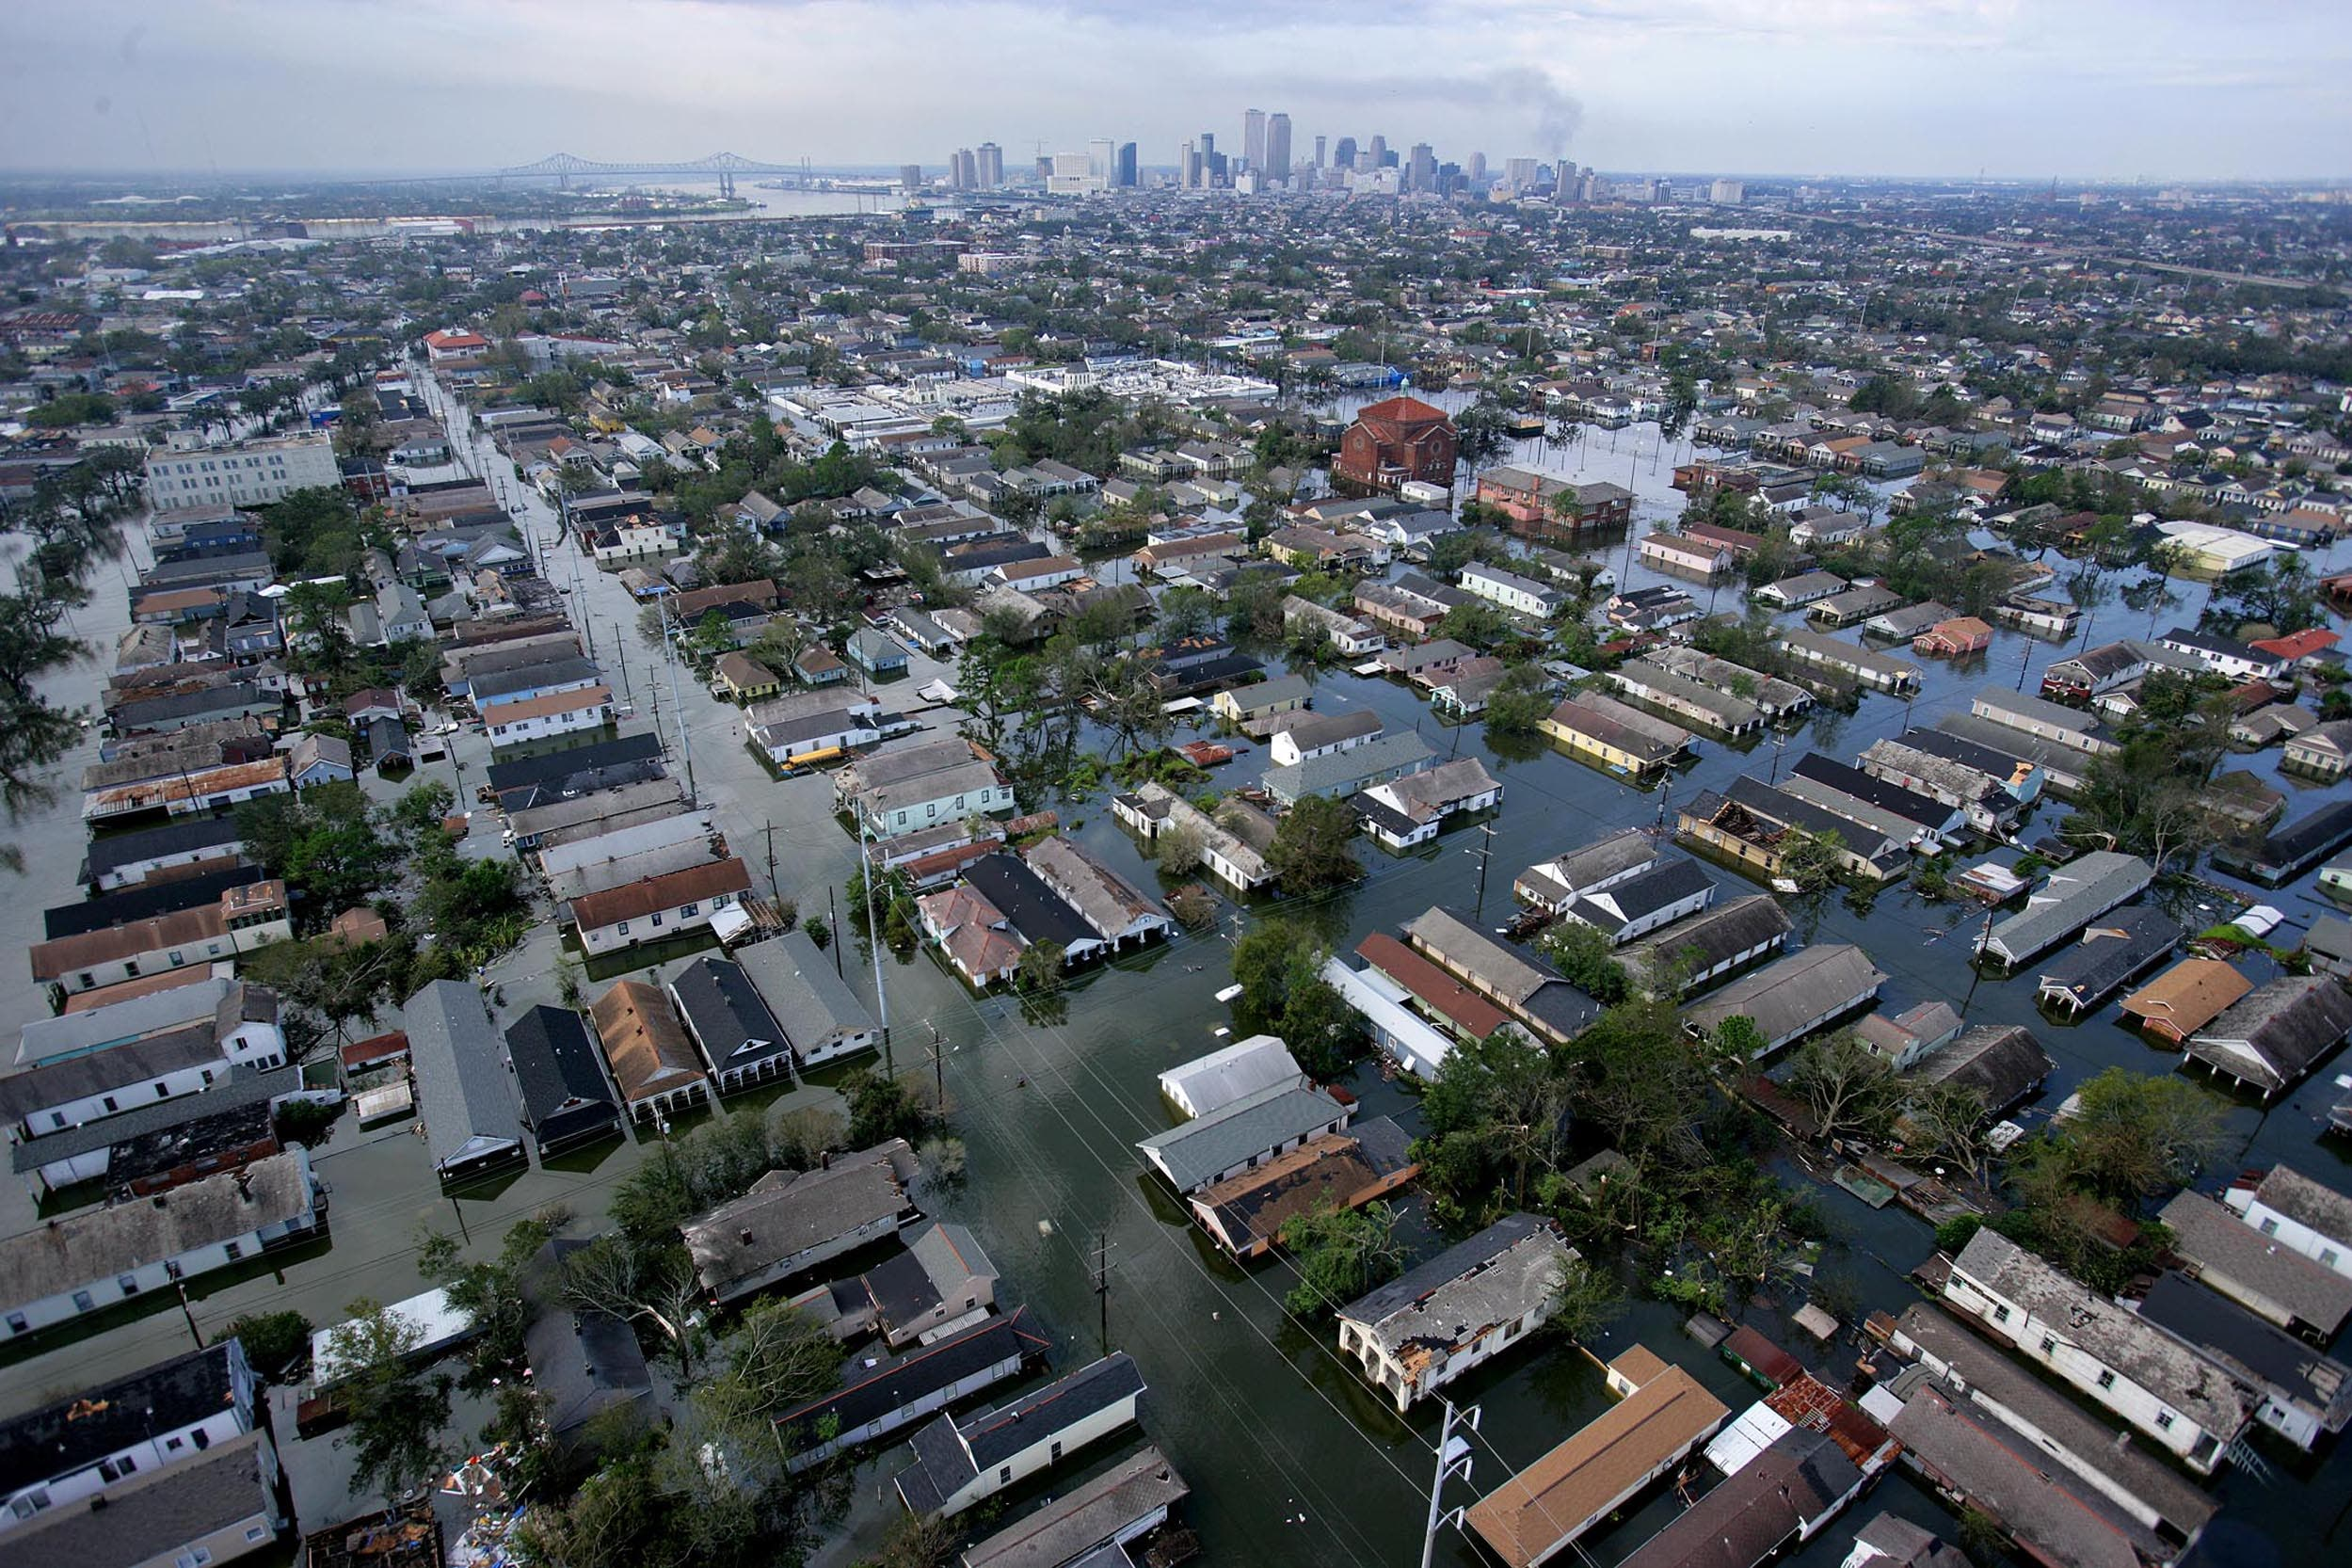 An aerial view of the devastation caused by high winds and heavy flooding in the greater New Orleans area following Hurricane Katrina in Baton Rouge, Louisiana August 30, 2005. Floodwaters engulfed much of New Orleans on Tuesday as officials feared a steep death toll and planned to evacuate thousands remaining in shelters after the historic city's defenses were breached by Hurricane Katrina. (Reuters)